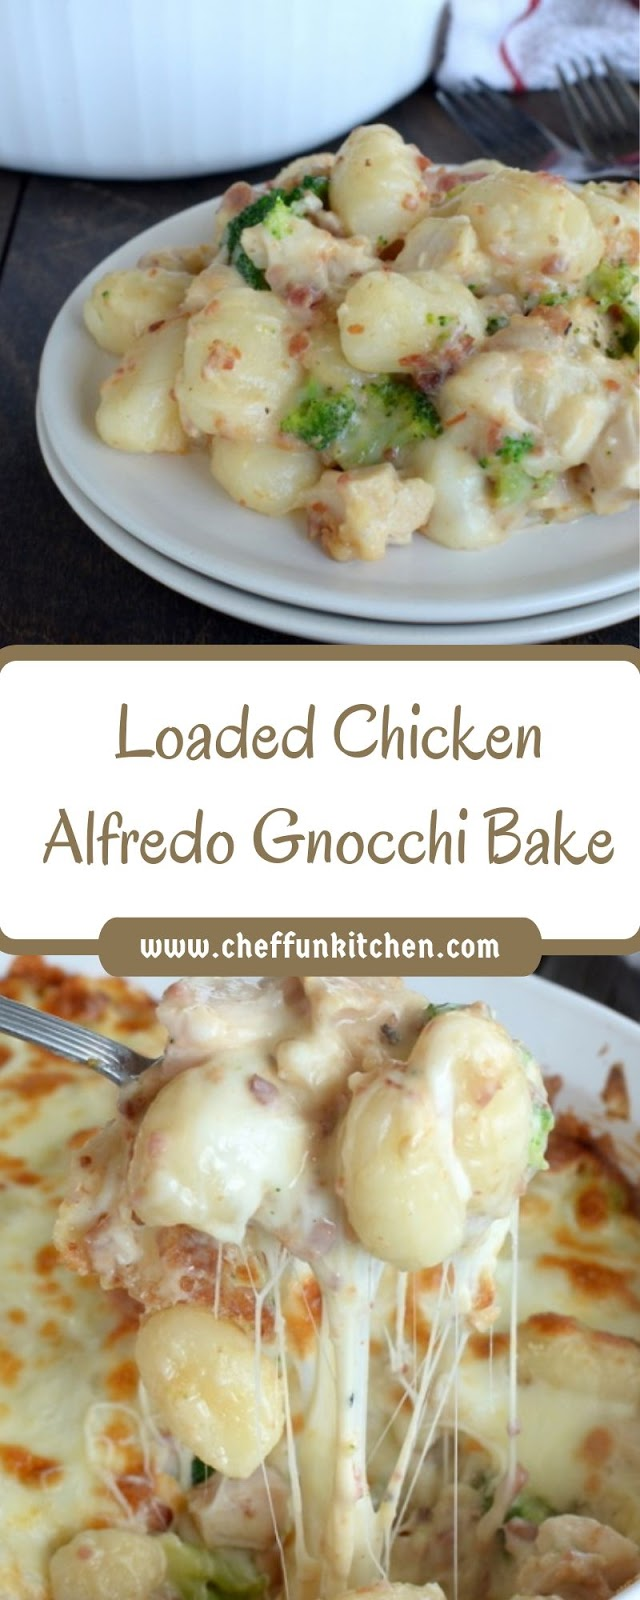 Loaded Chicken Alfredo Gnocchi Bake